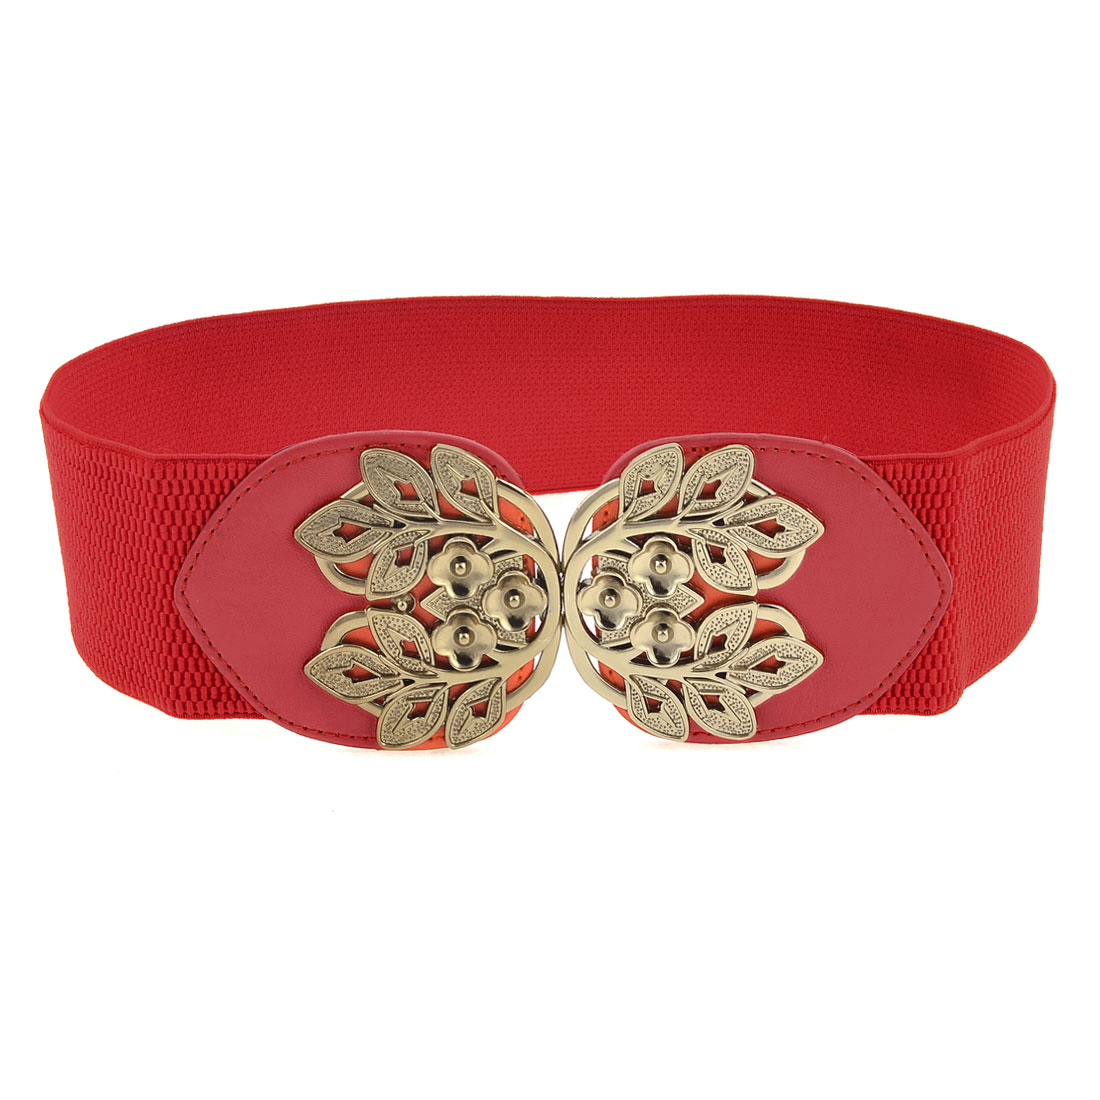 Red Elastic Band Gray Metal Plum Blossom Design Cinch Belt for Girls